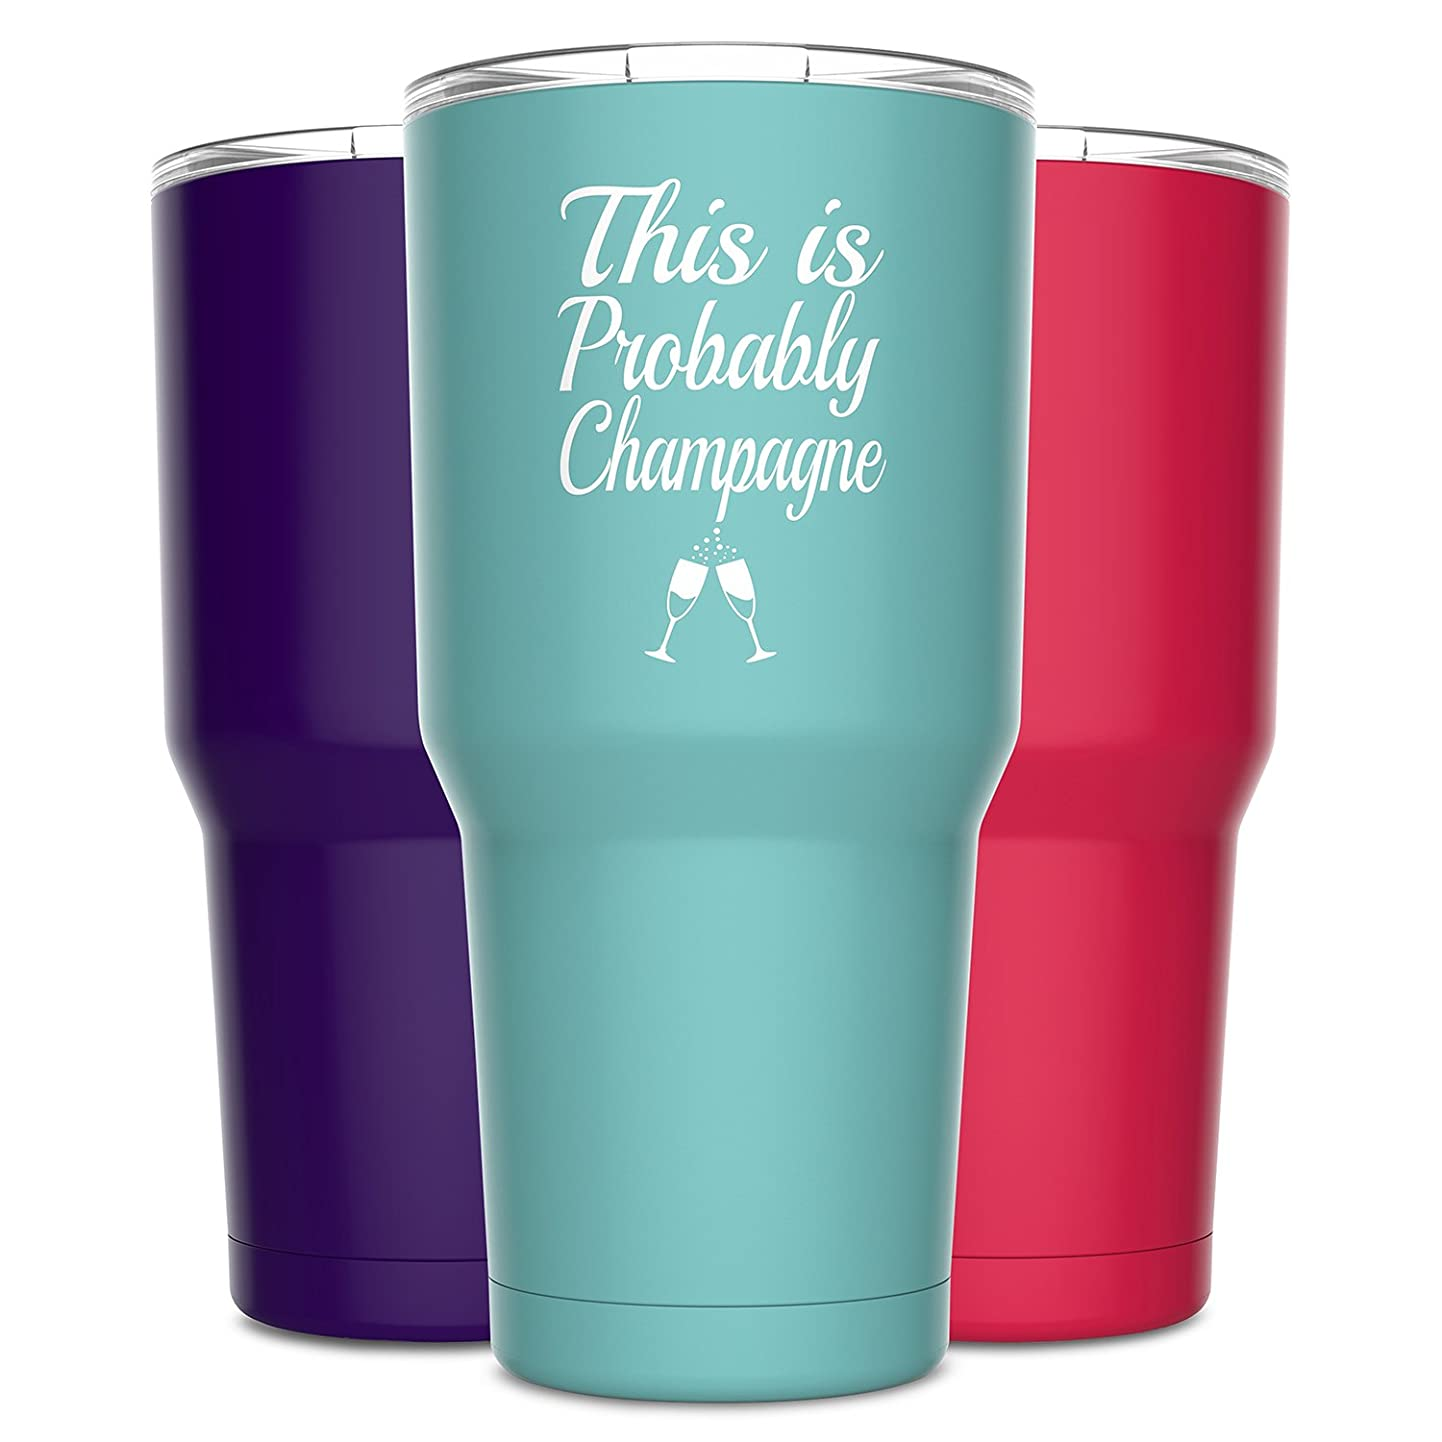 Alcee This is Probably Champagne Stainless Steel Funny Tumbler with Lid - Large 30 oz Vacuum Insulated Travel Mug - Funny Tumblers for Hot Coffee and Cold Drinks - Premium Gifts Women Men Mom Sister mhevwceqtts9